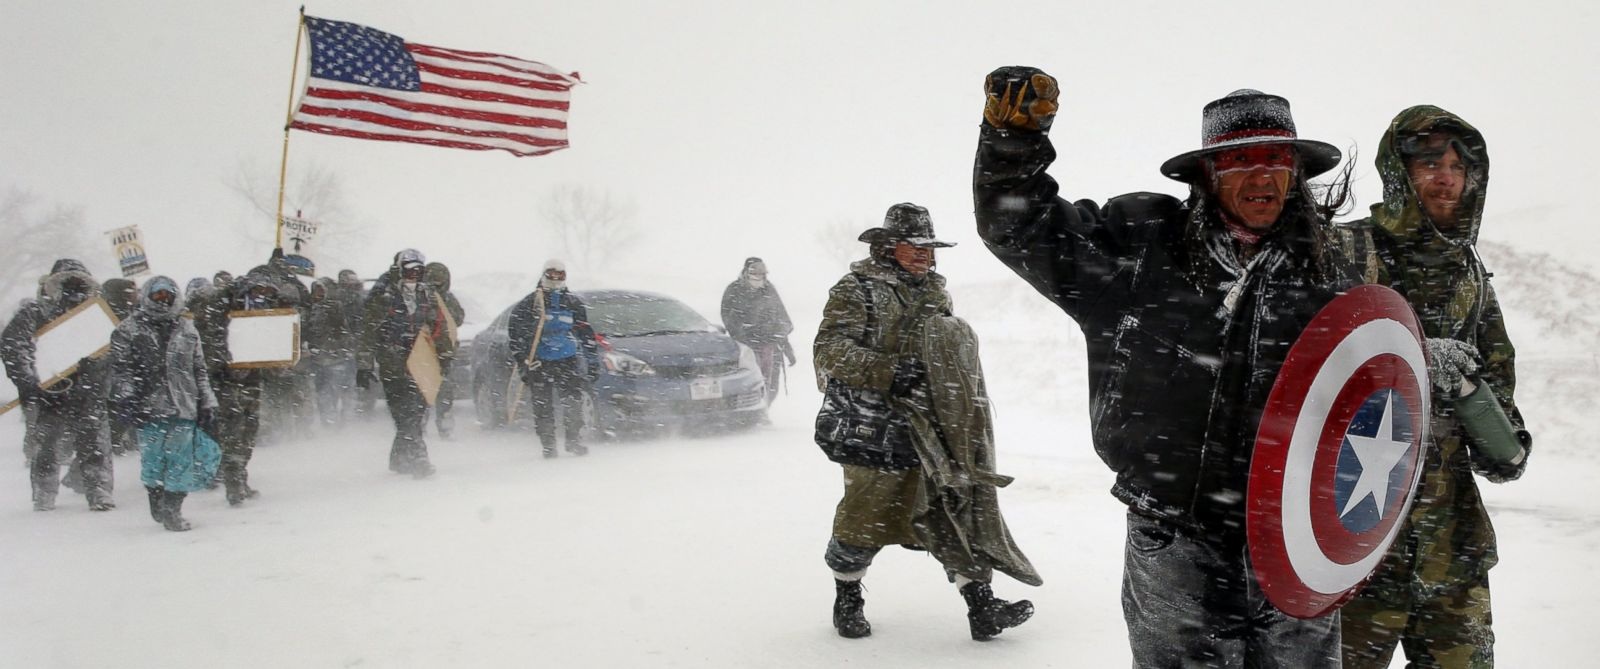 http://a.abcnews.com/images/US/RT-Standing-Rock-Indian-Reservation-Protest-MEM-170201_12x5_1600.jpg